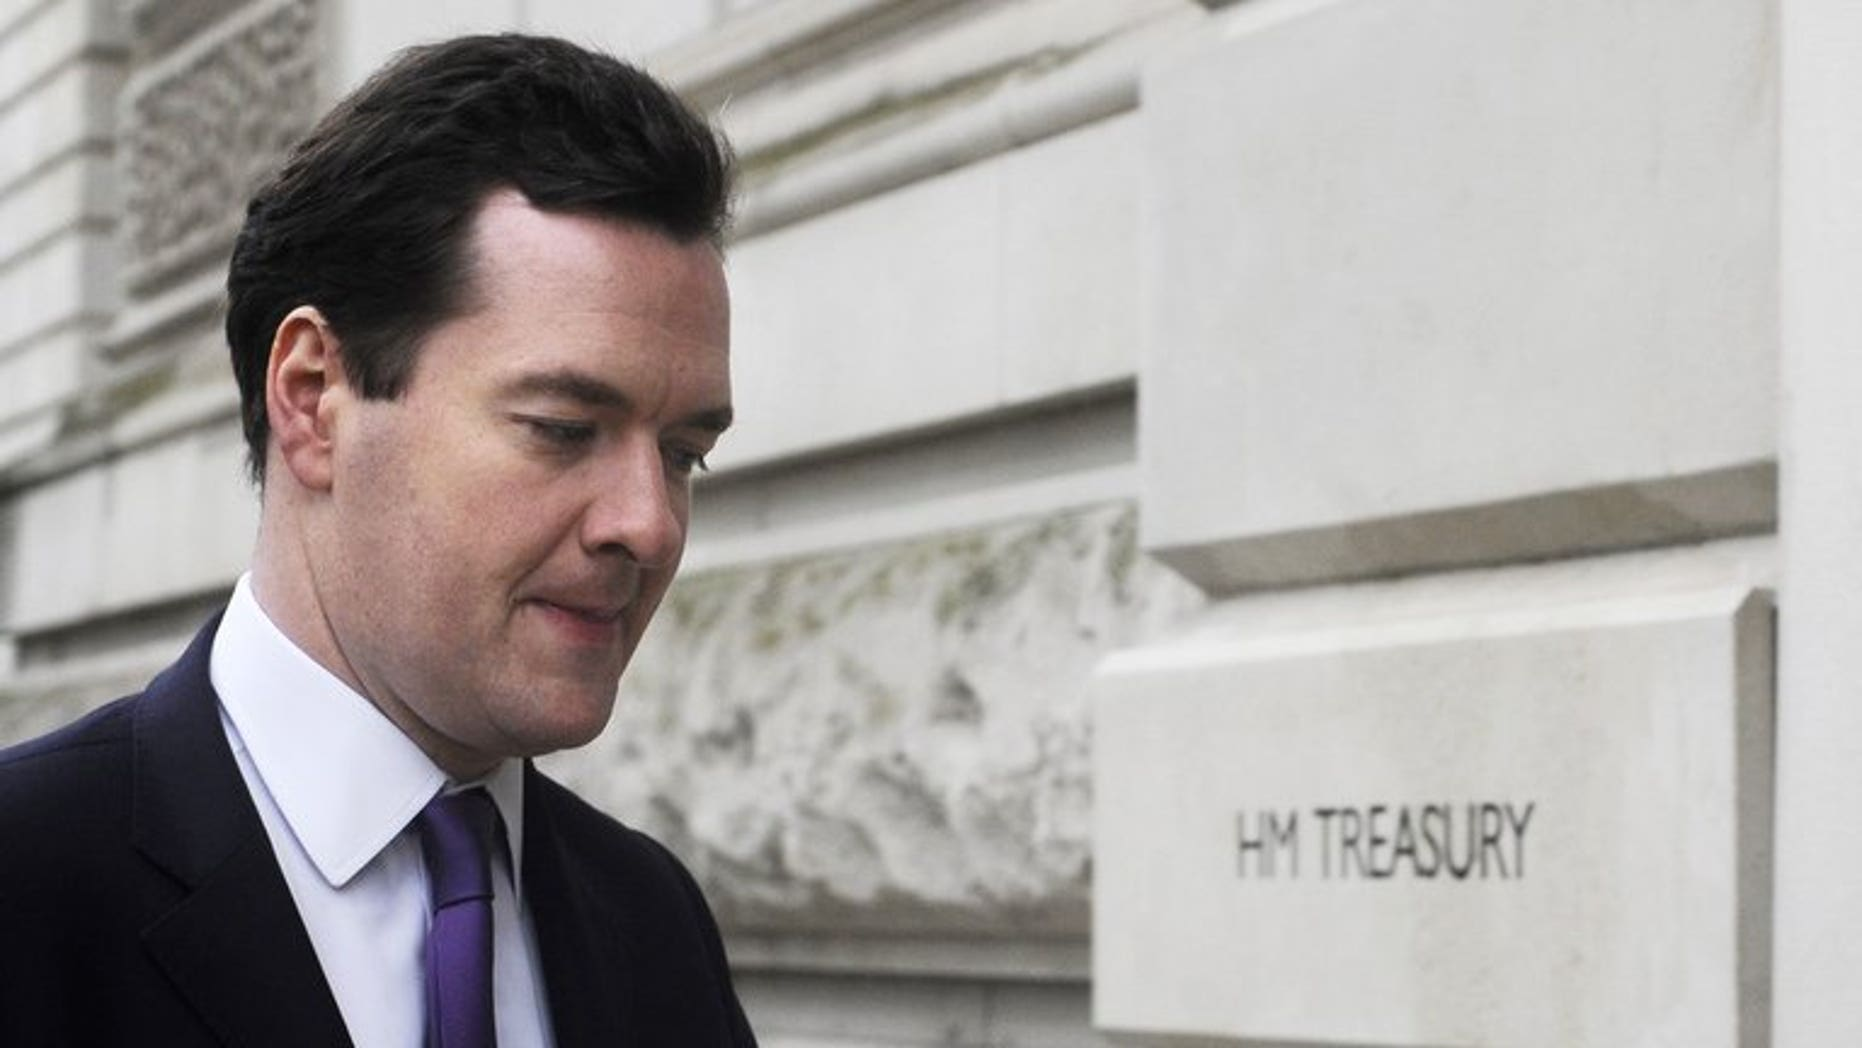 Chancellor of the Exchequer Geroge Osborne walks into the Treasury in London on January 25, 2012. State borrowing sank last month on lower public spending and high tax receipts, official data shows, boosting the government's attempt to slash Britain's huge deficit.